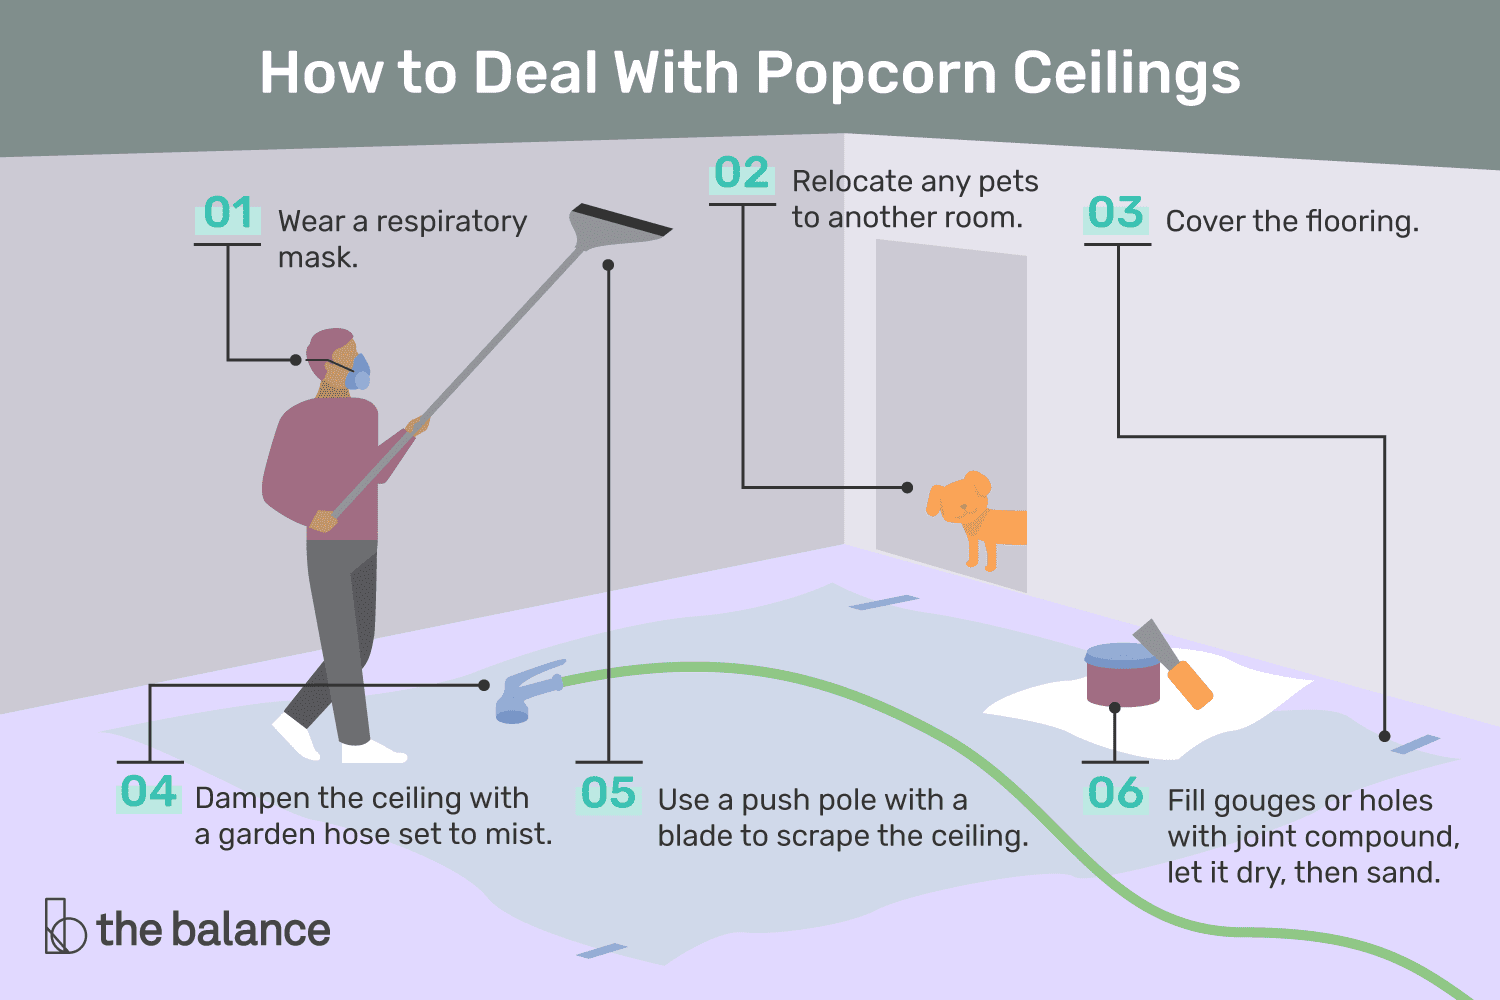 Should You A Home With Popcorn Ceilings